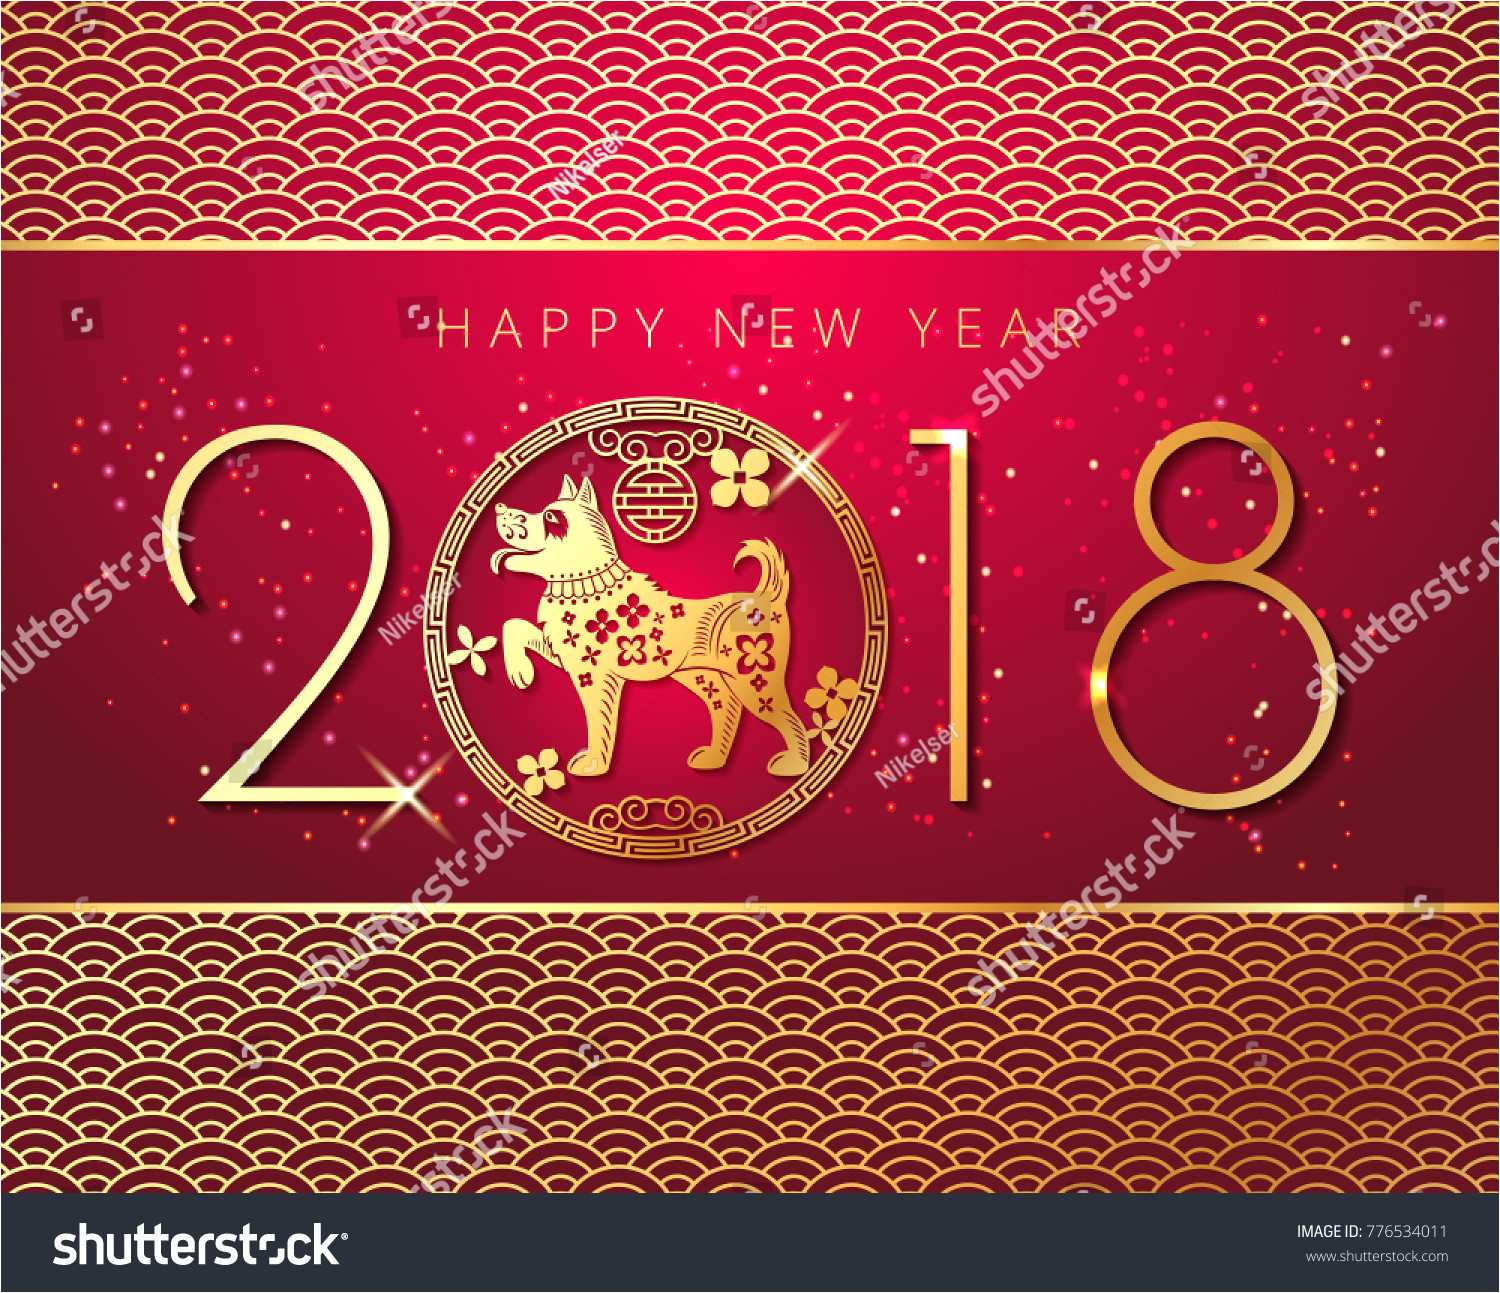 Chinese New Year Paper Cutting Template Happy New Year 2018 Chinese New Stock Vector 776534011